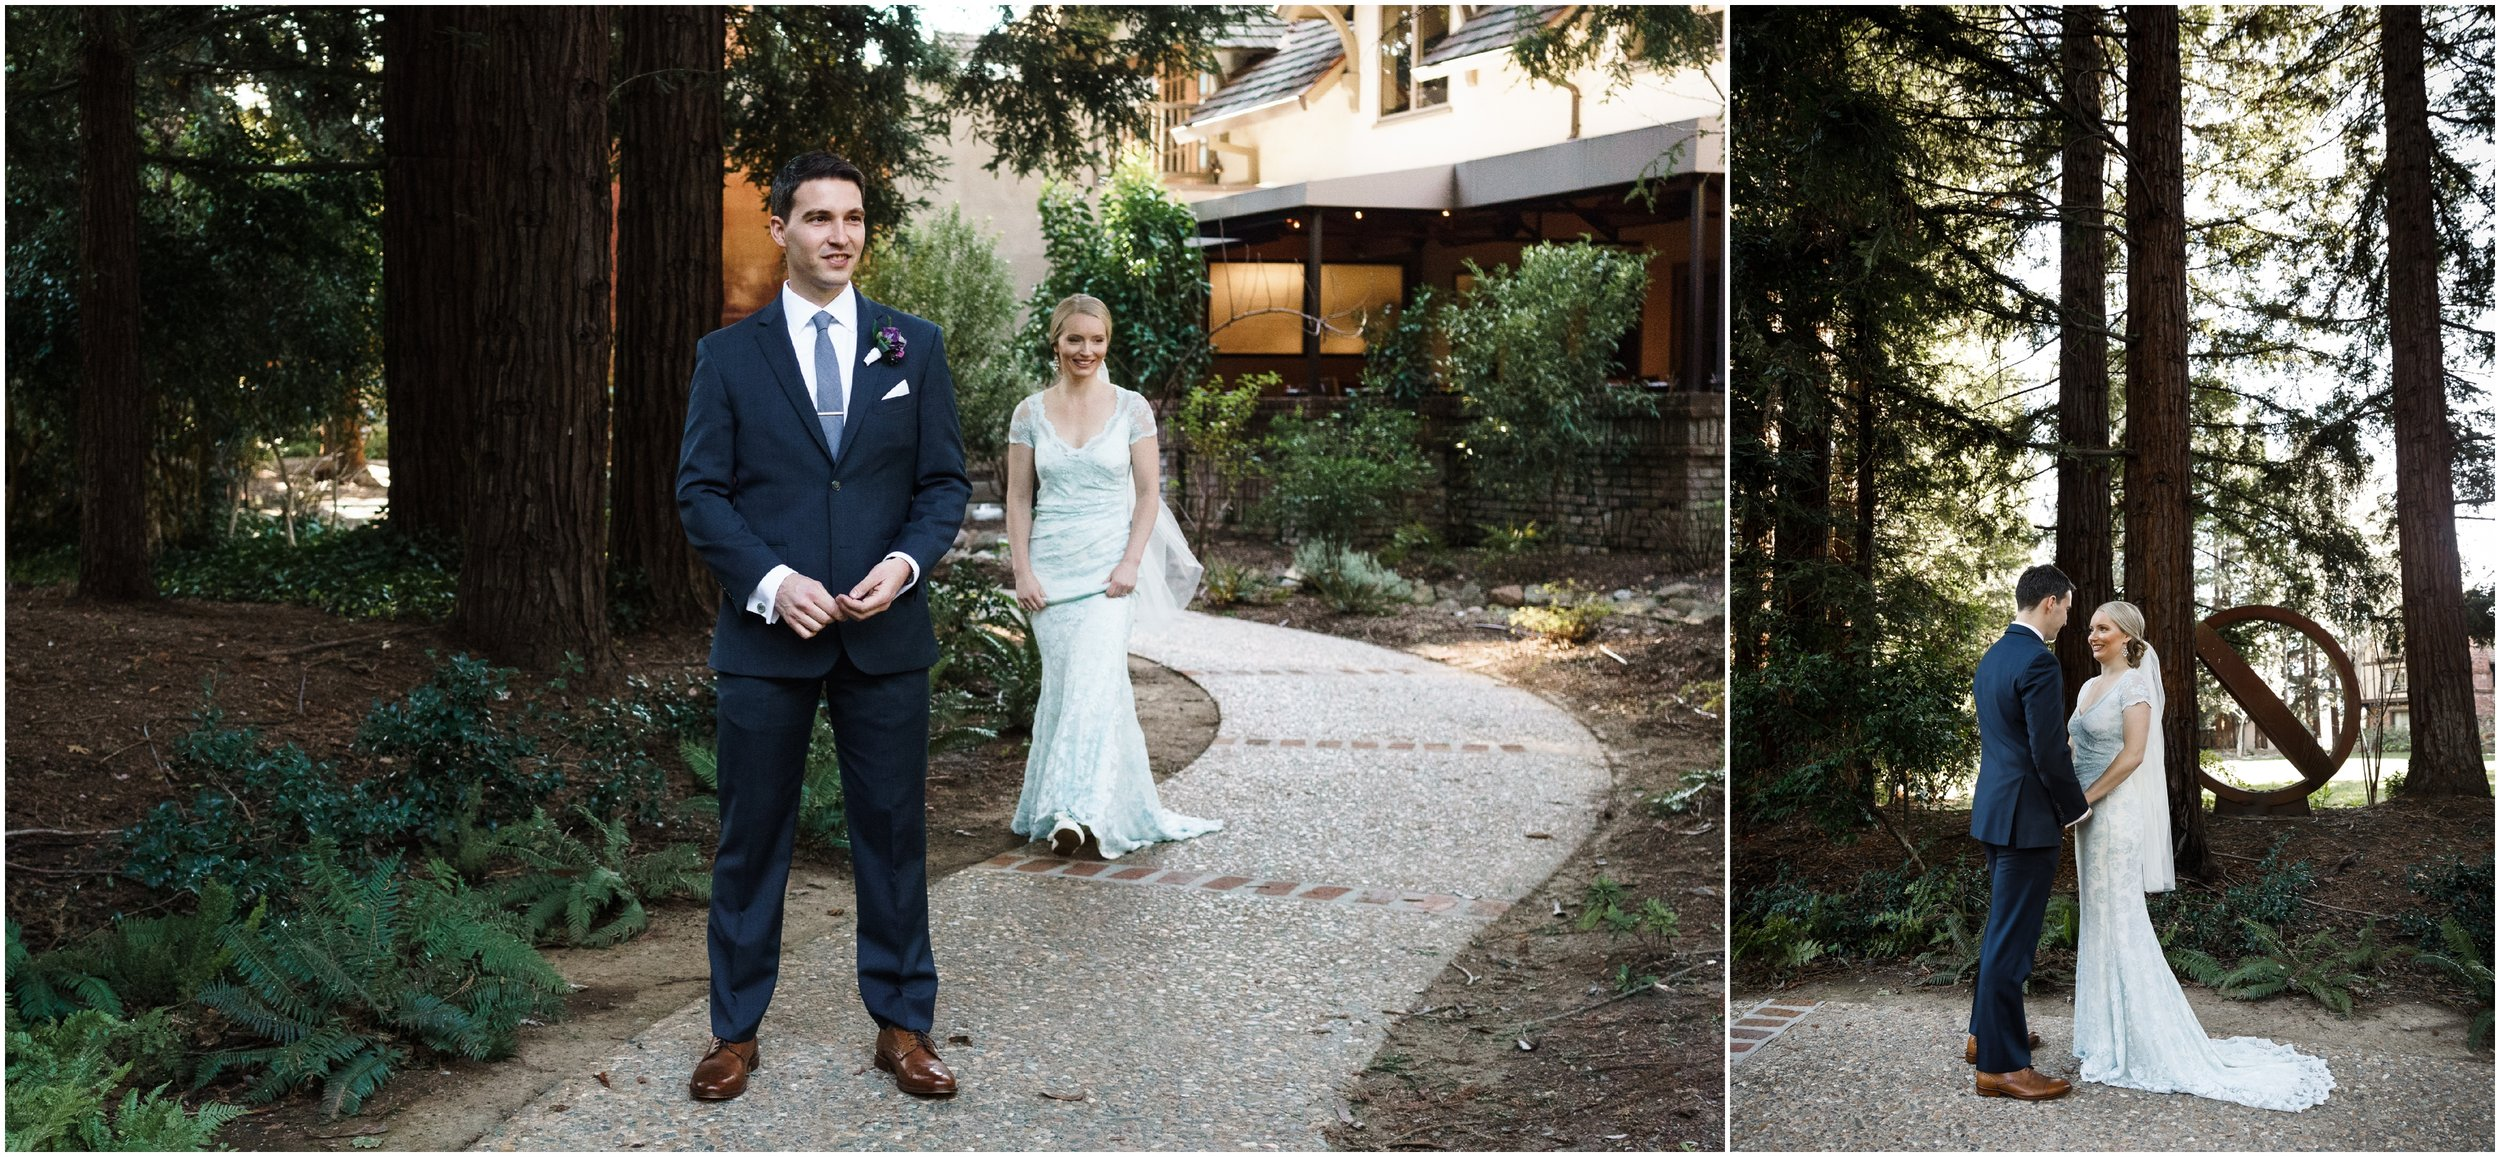 bride and groom's first look at the Harvest Inn in Napa Valley